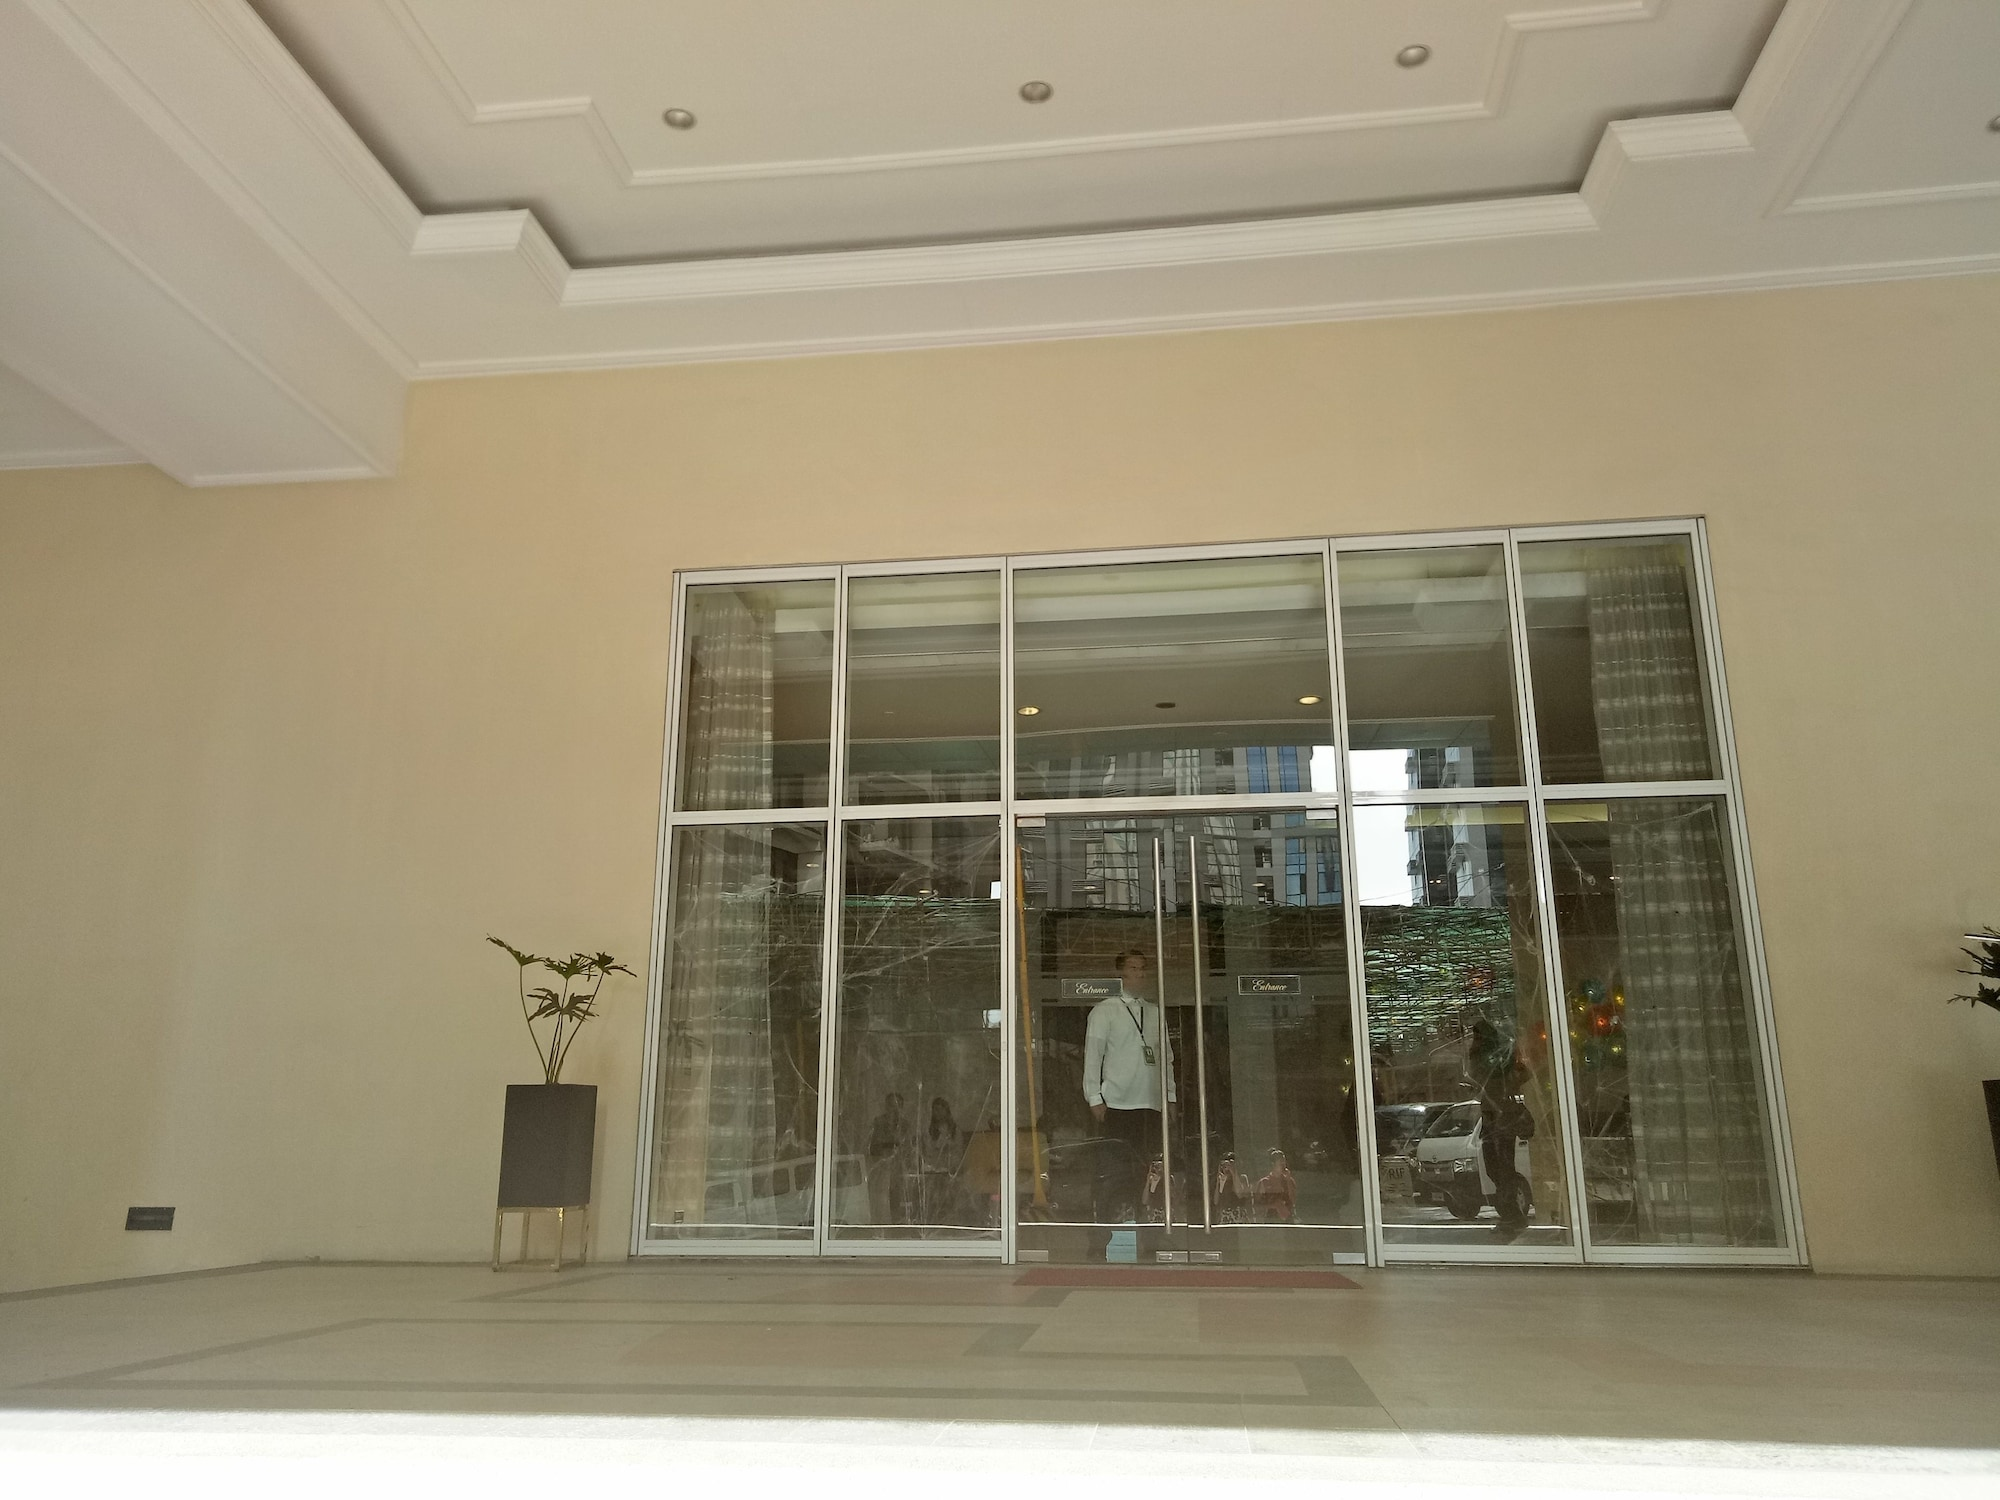 Venice Mall Area McKinley Hill Taguig BGC, Makati City